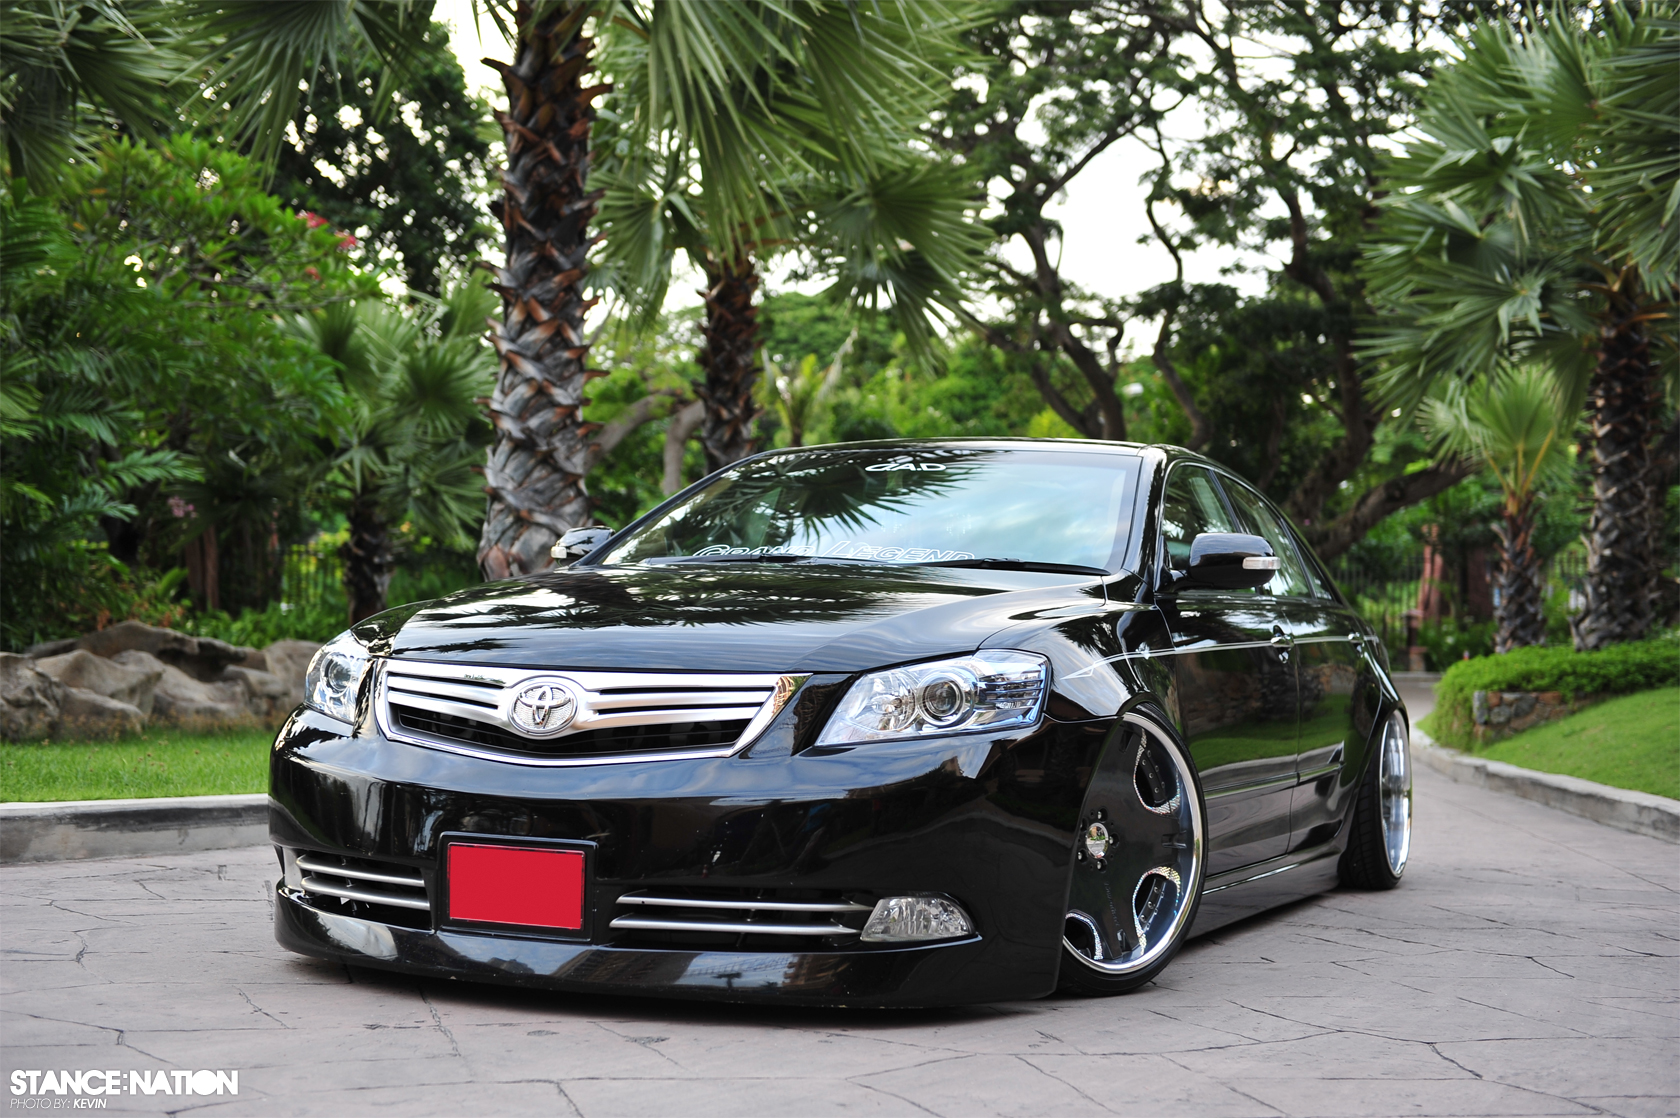 Slammed Vip Style Camry Stancenation Form Function Toyota Oil Diagram If